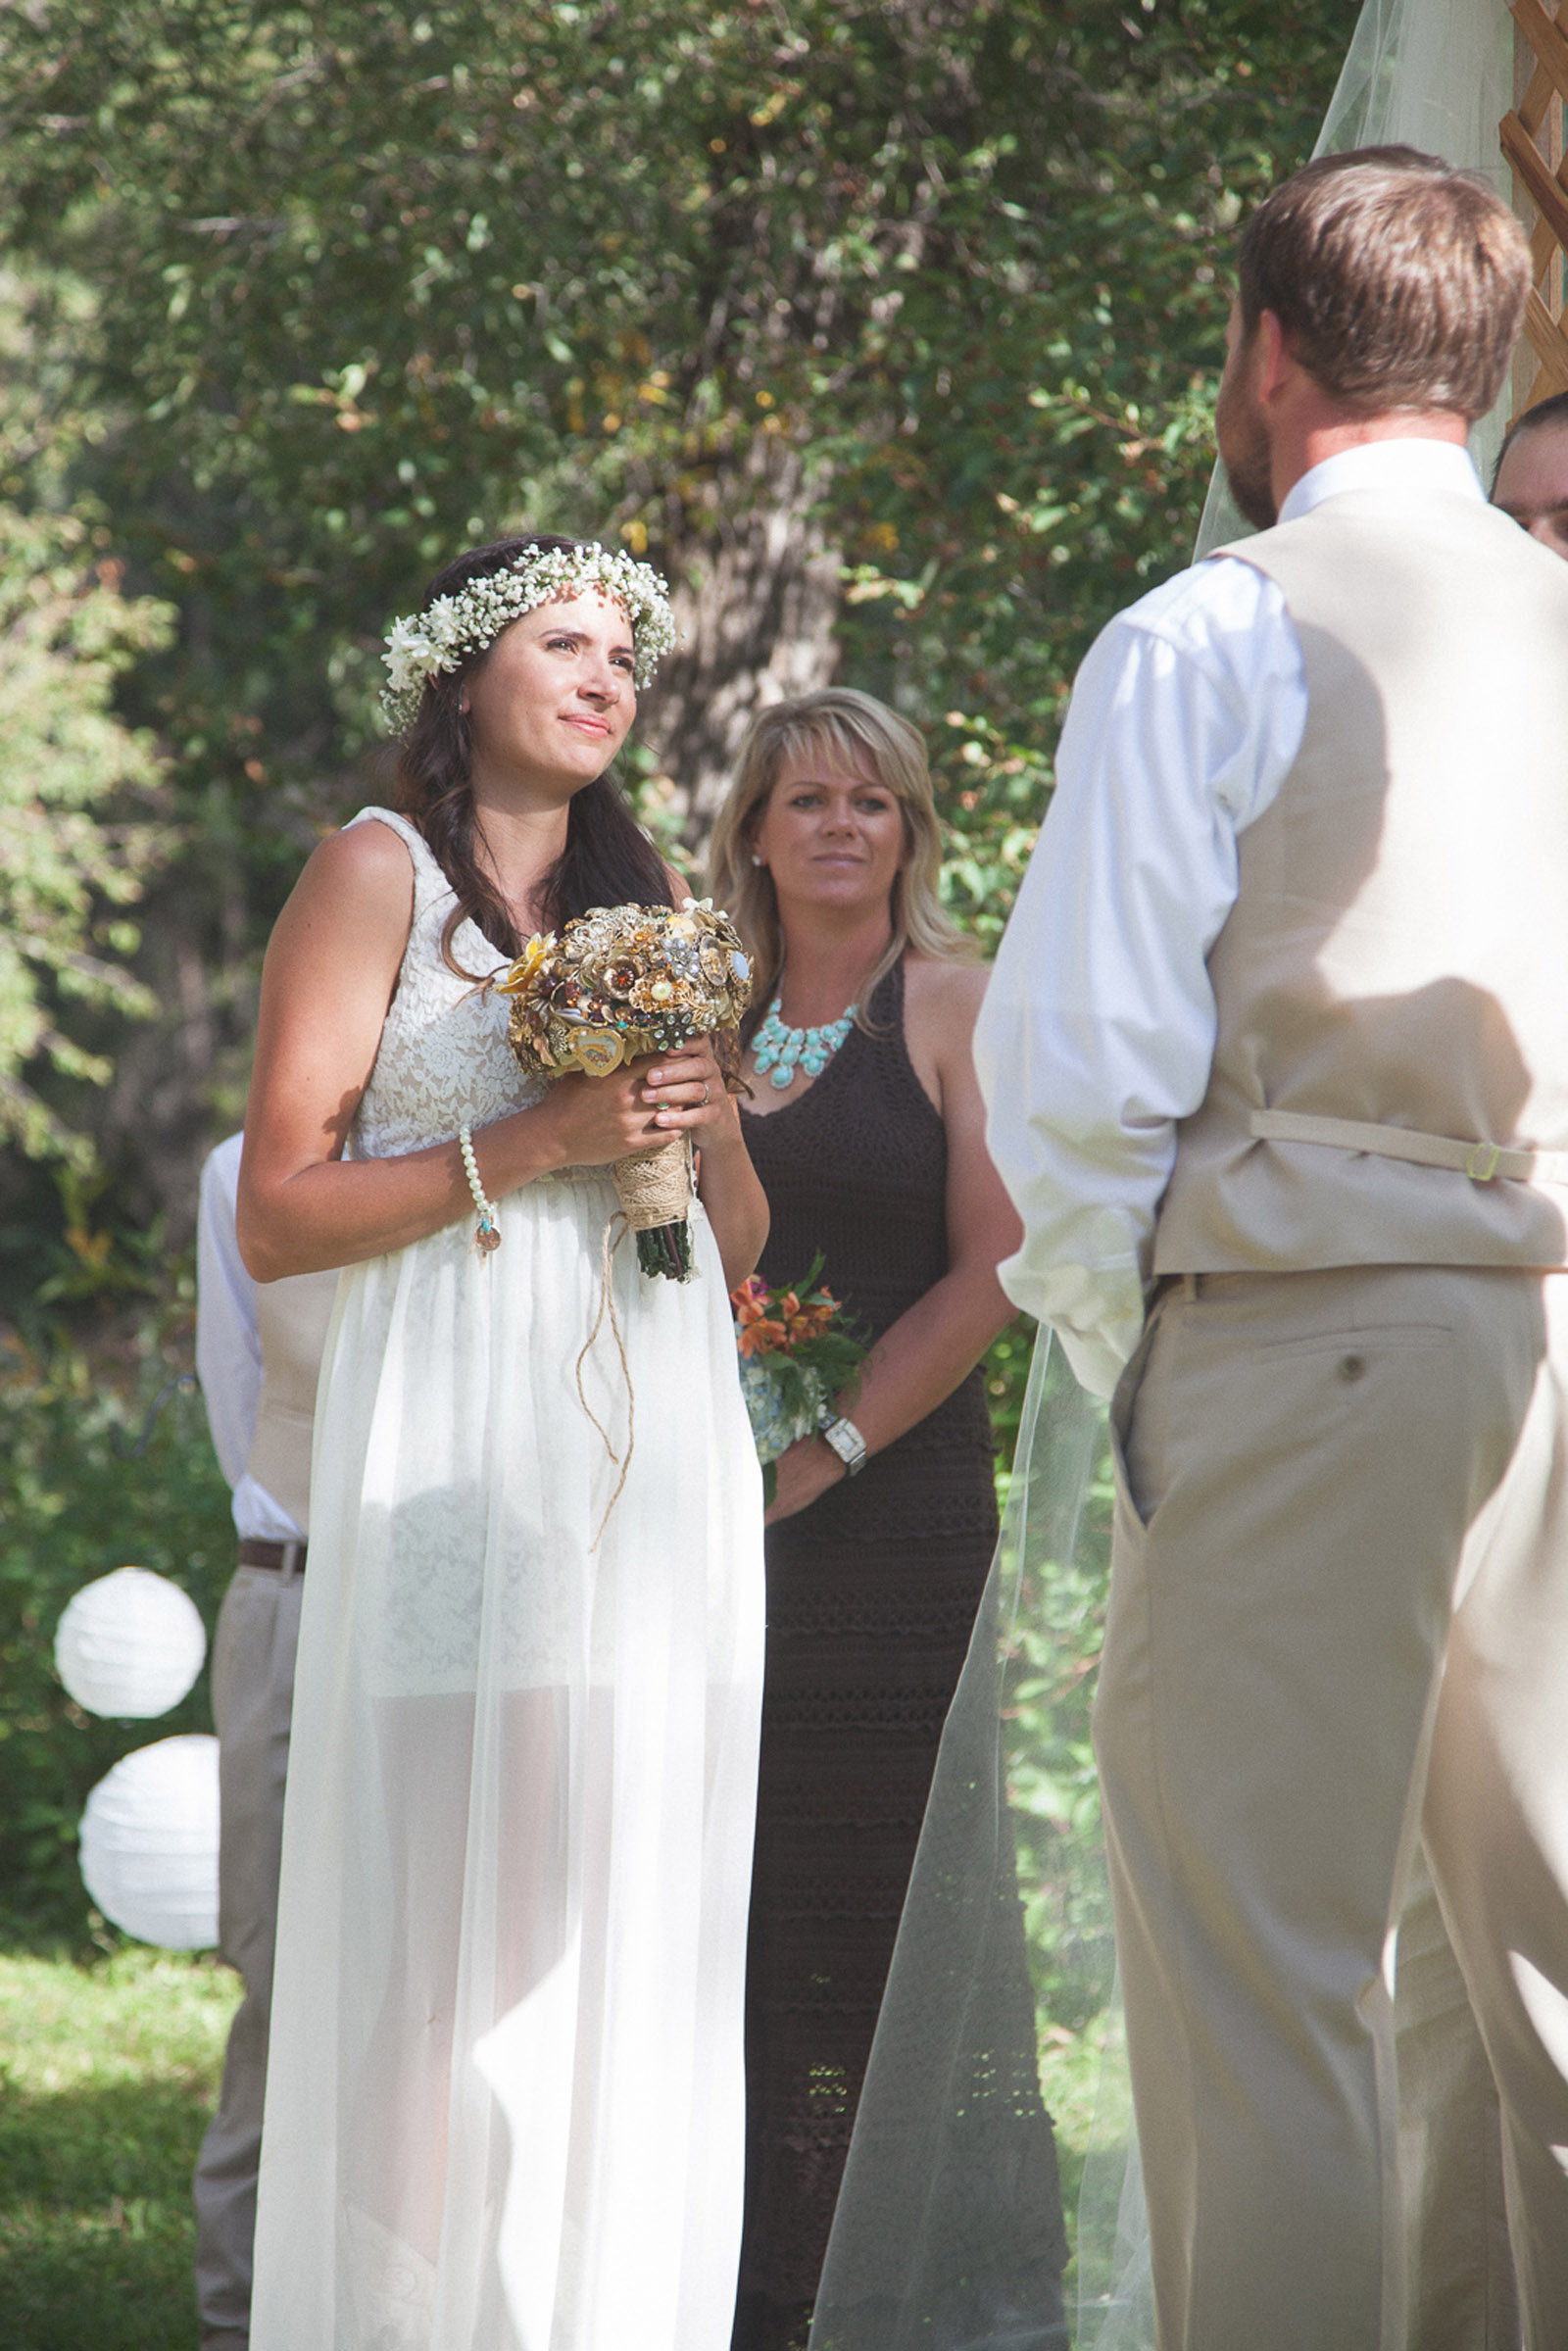 072-wedding-party-bus-fun-photography-ceremony